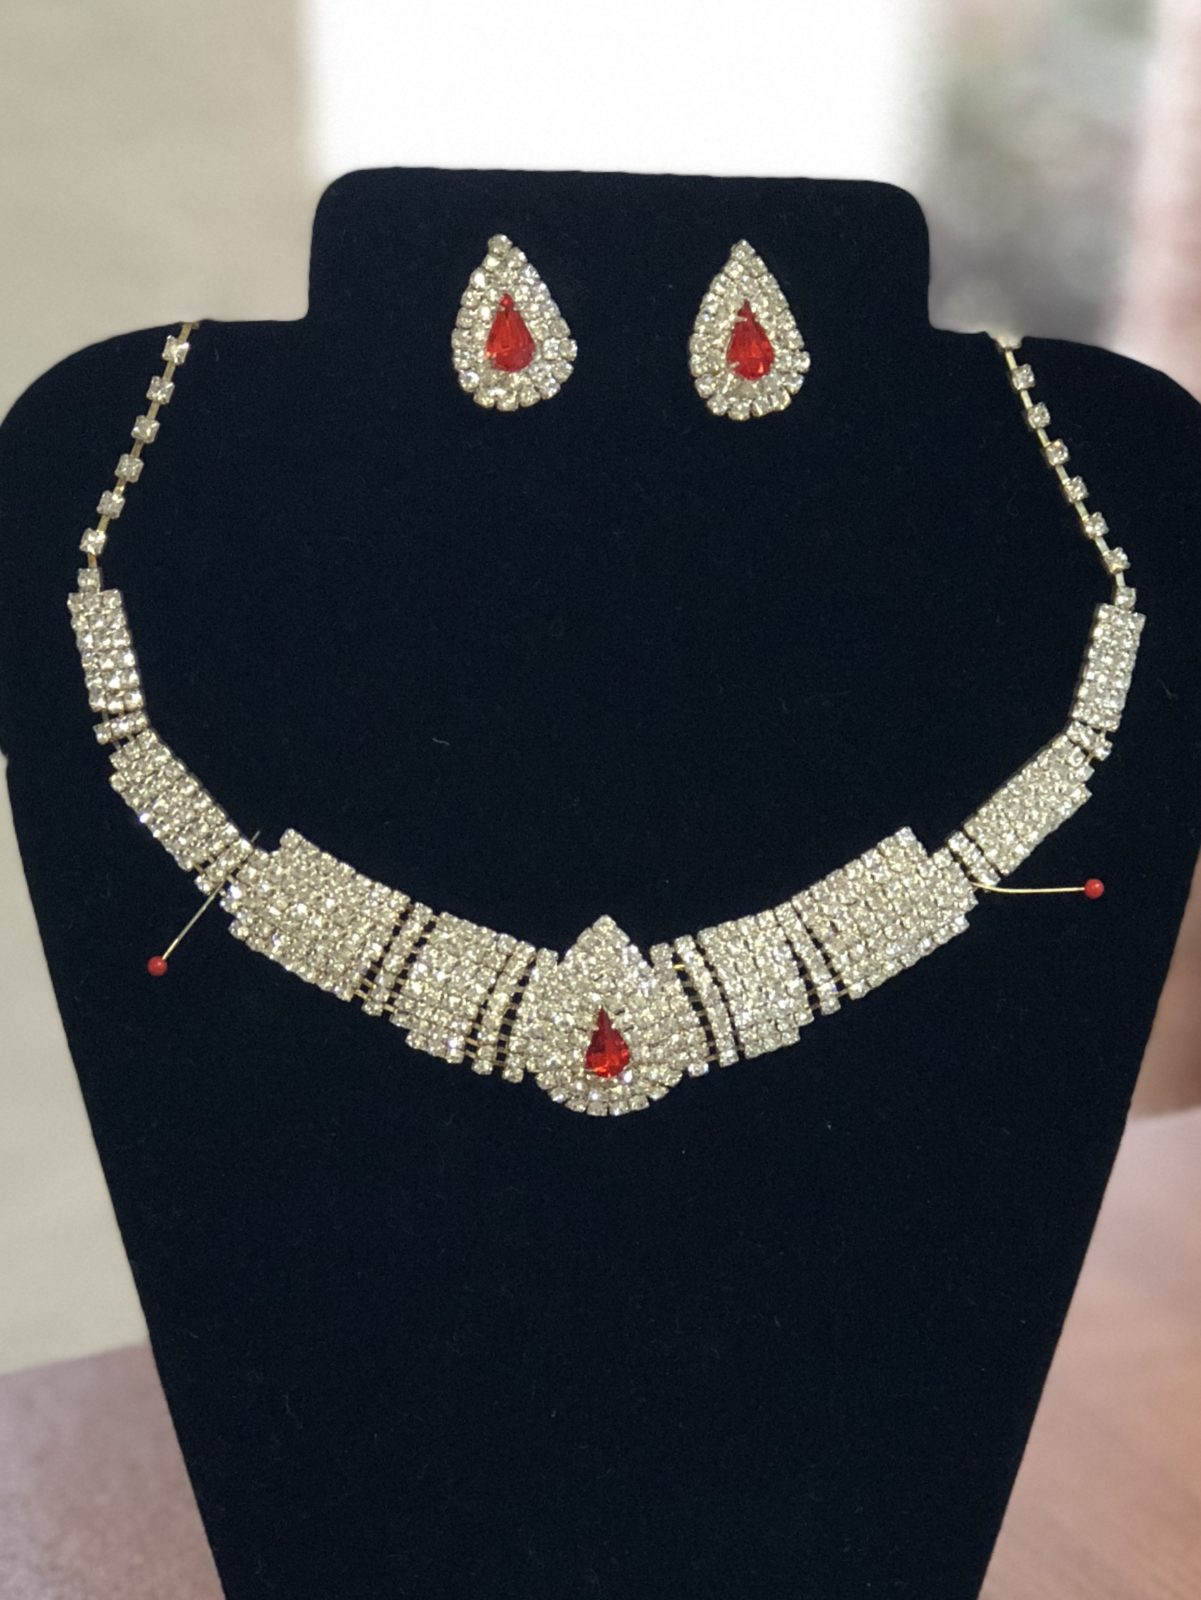 Gold Rhinestone/Ruby Necklace Set • Beautiful gold tone rhinestone and ruby necklace set.  Will make any red dress or outfit pop.